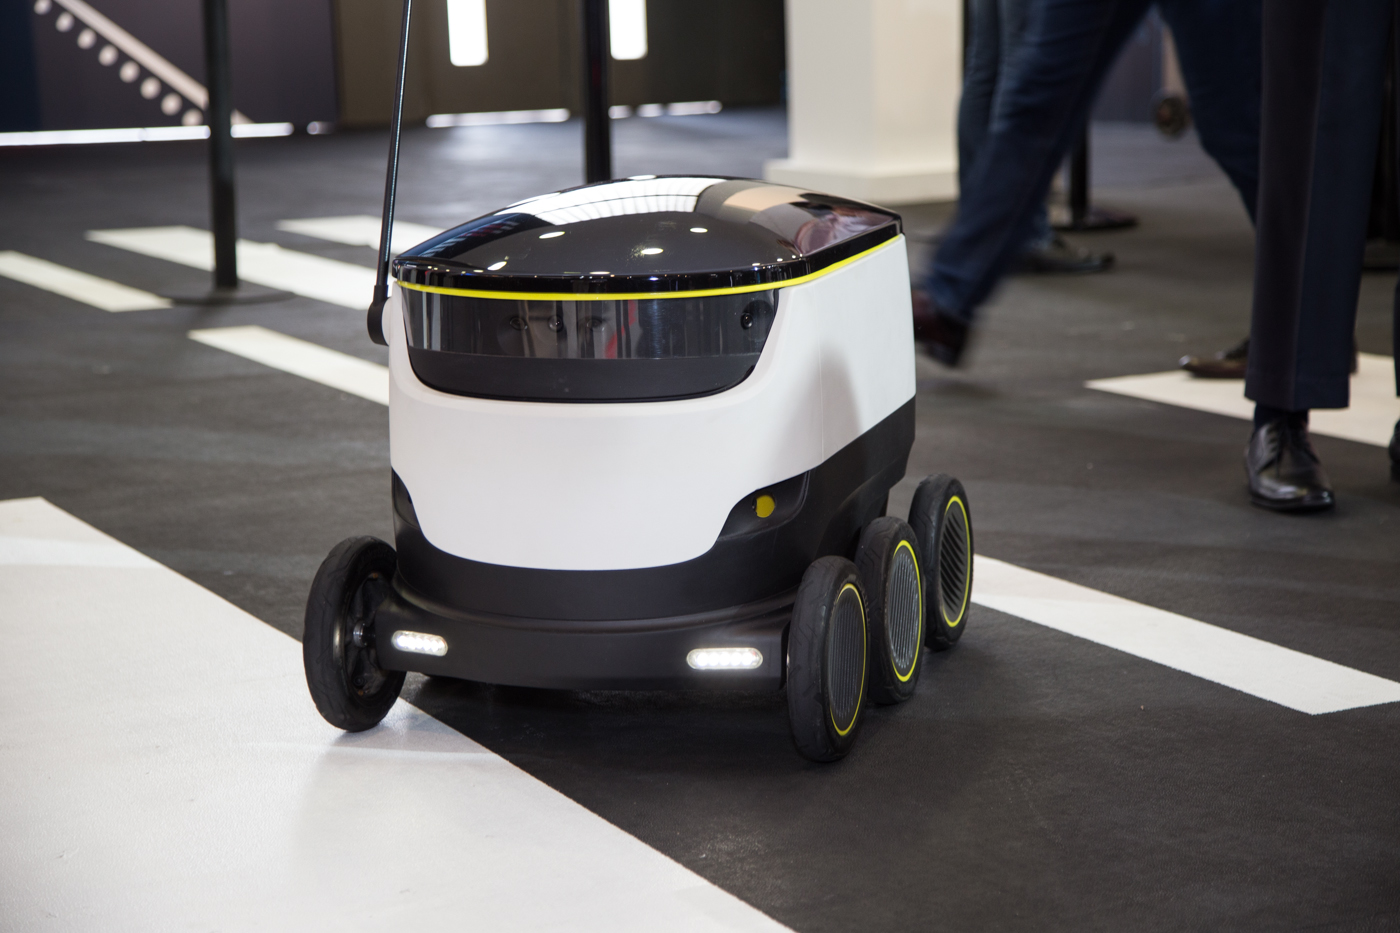 starship-delivery-robot-10.jpg